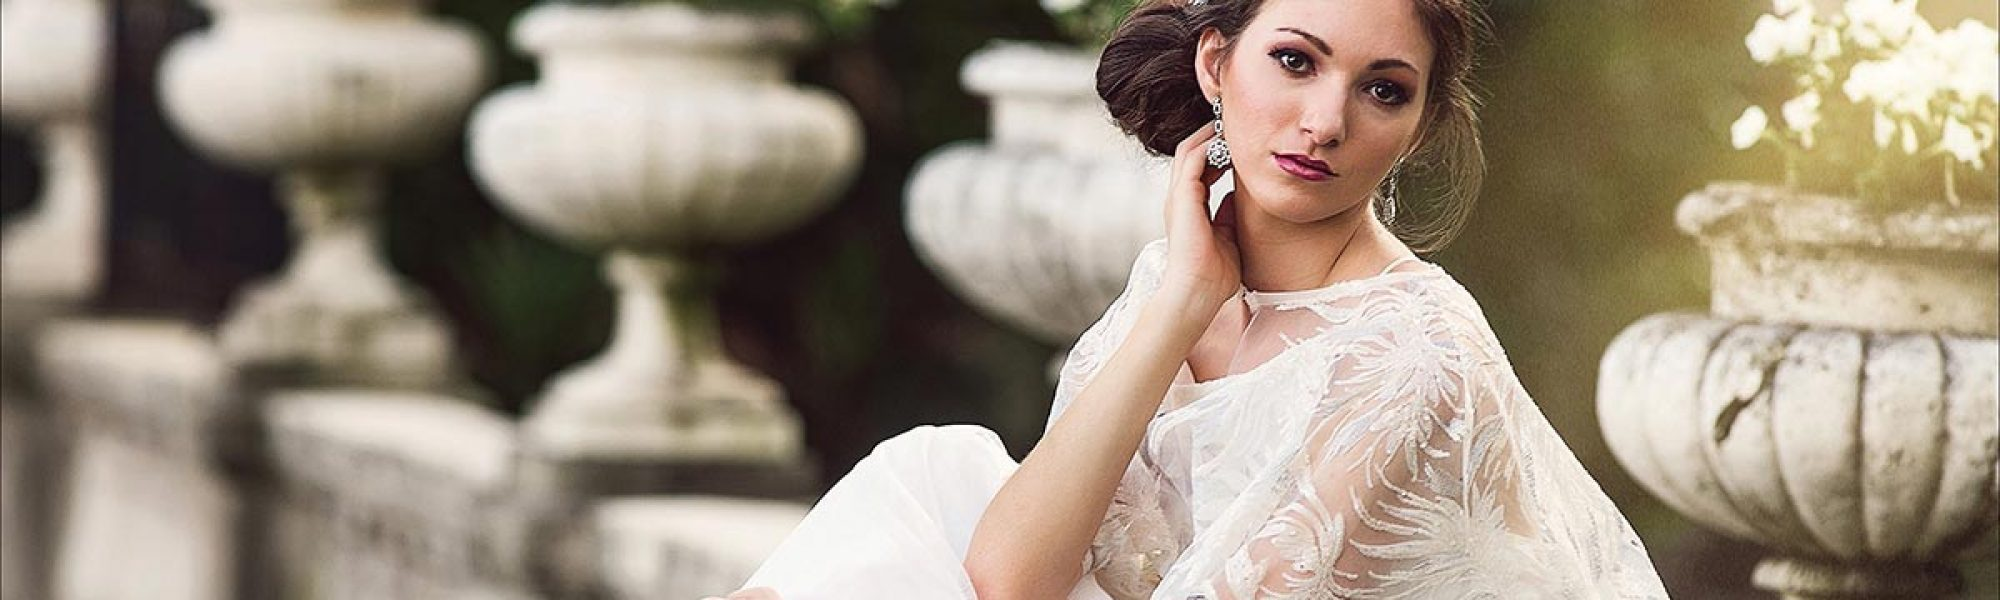 Wedding fashion with flowing cape